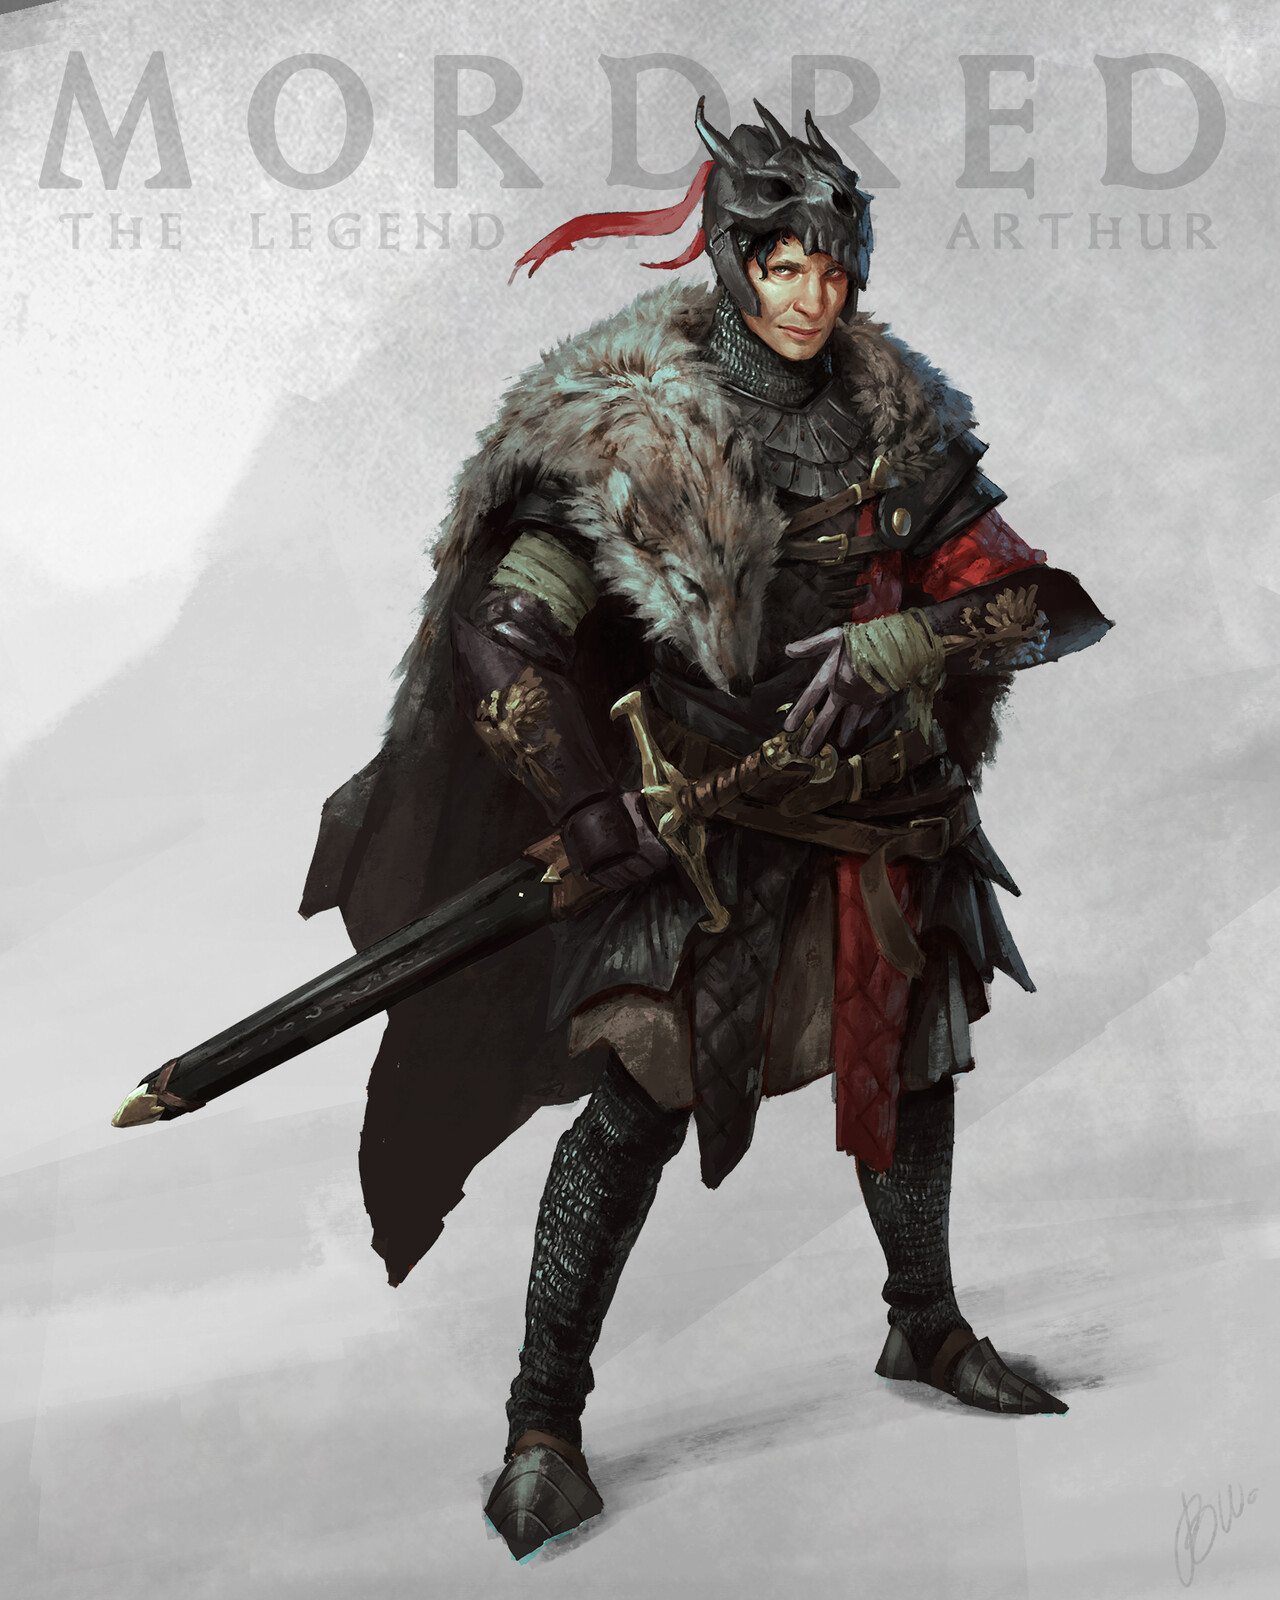 I visualised Mordred's treacherous character by using lots of black and red, pointy shapes and the wolf pelt and pendragon skull. Also the insidious look on his face.